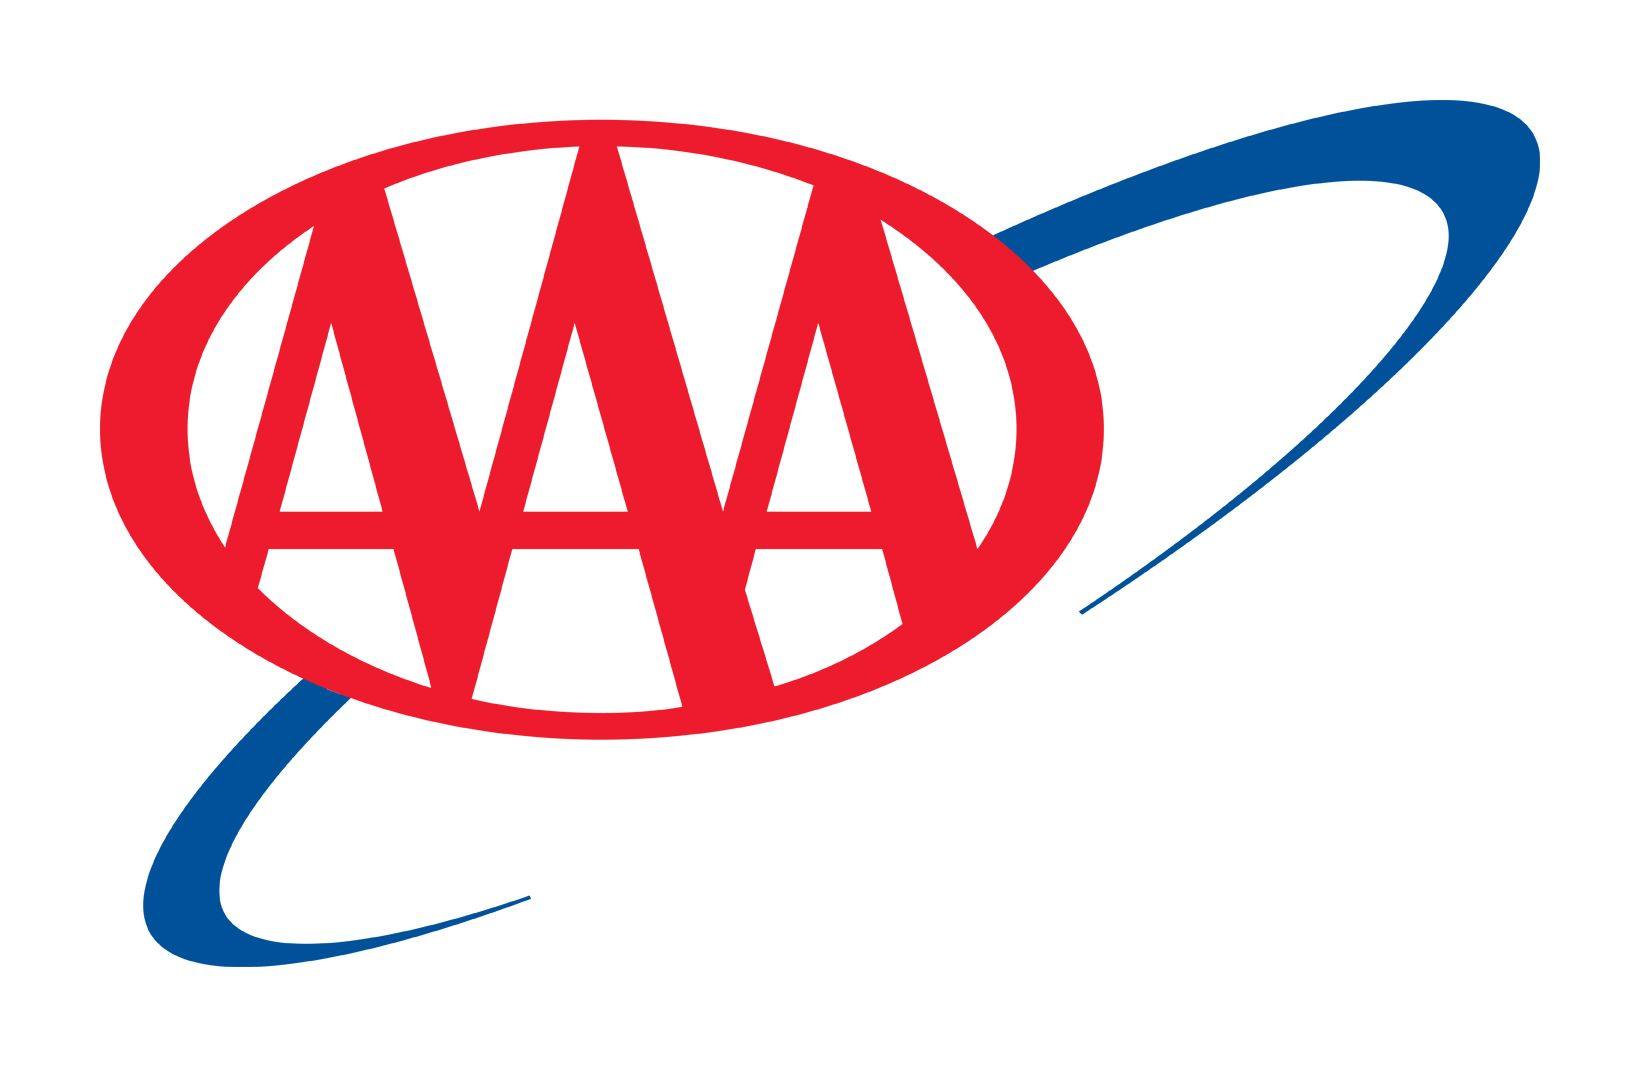 Lra By Deloitte Works With The Aaa Club Servicing Ohio And